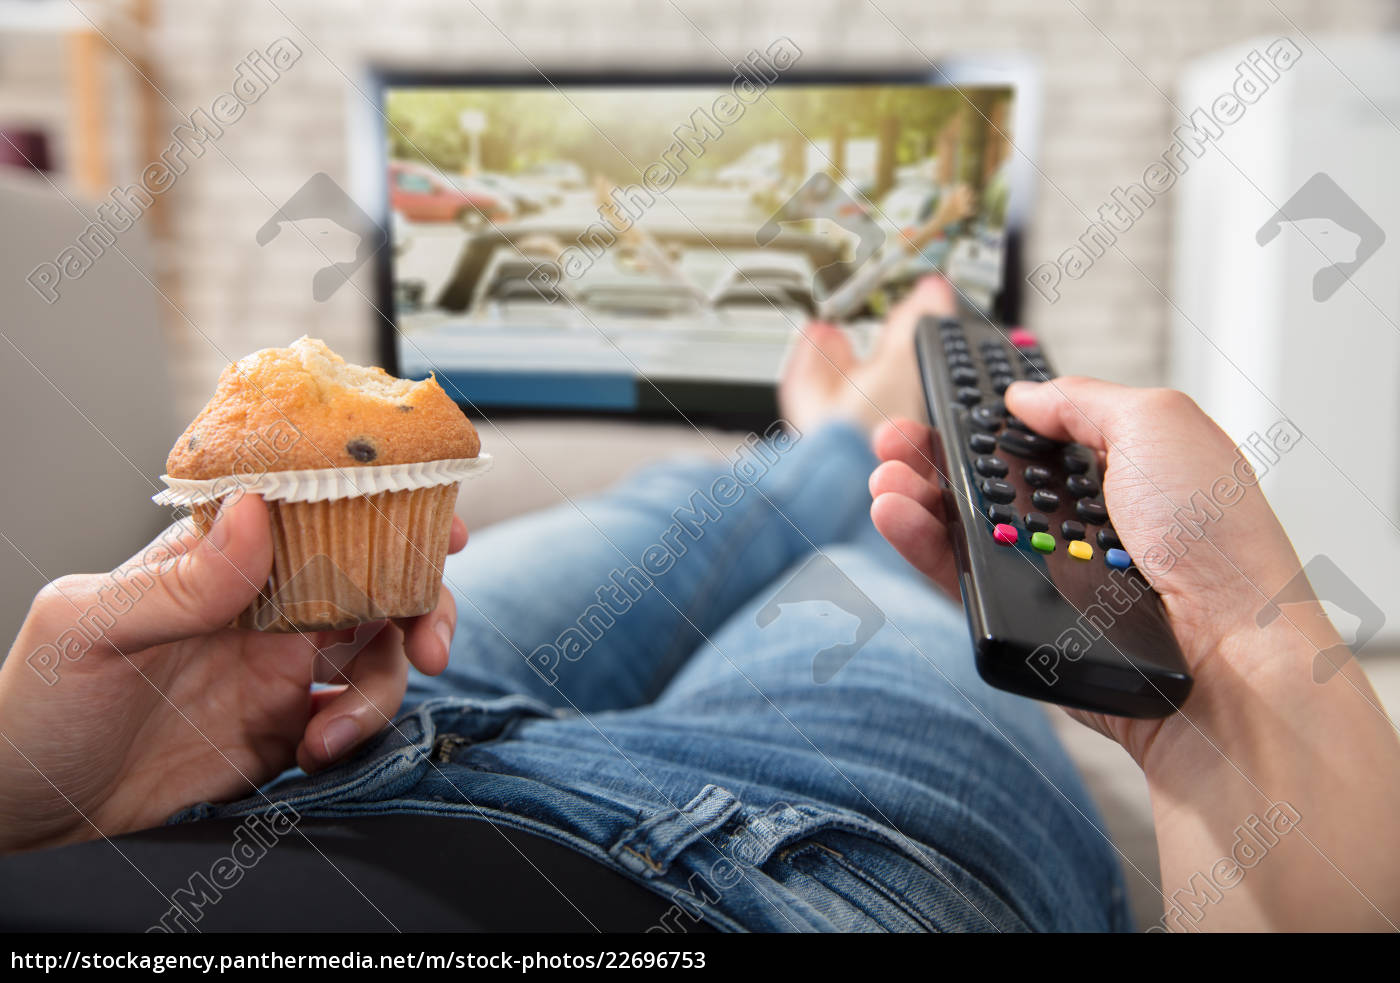 woman, holding, cupcake, and, remote, control - 22696753